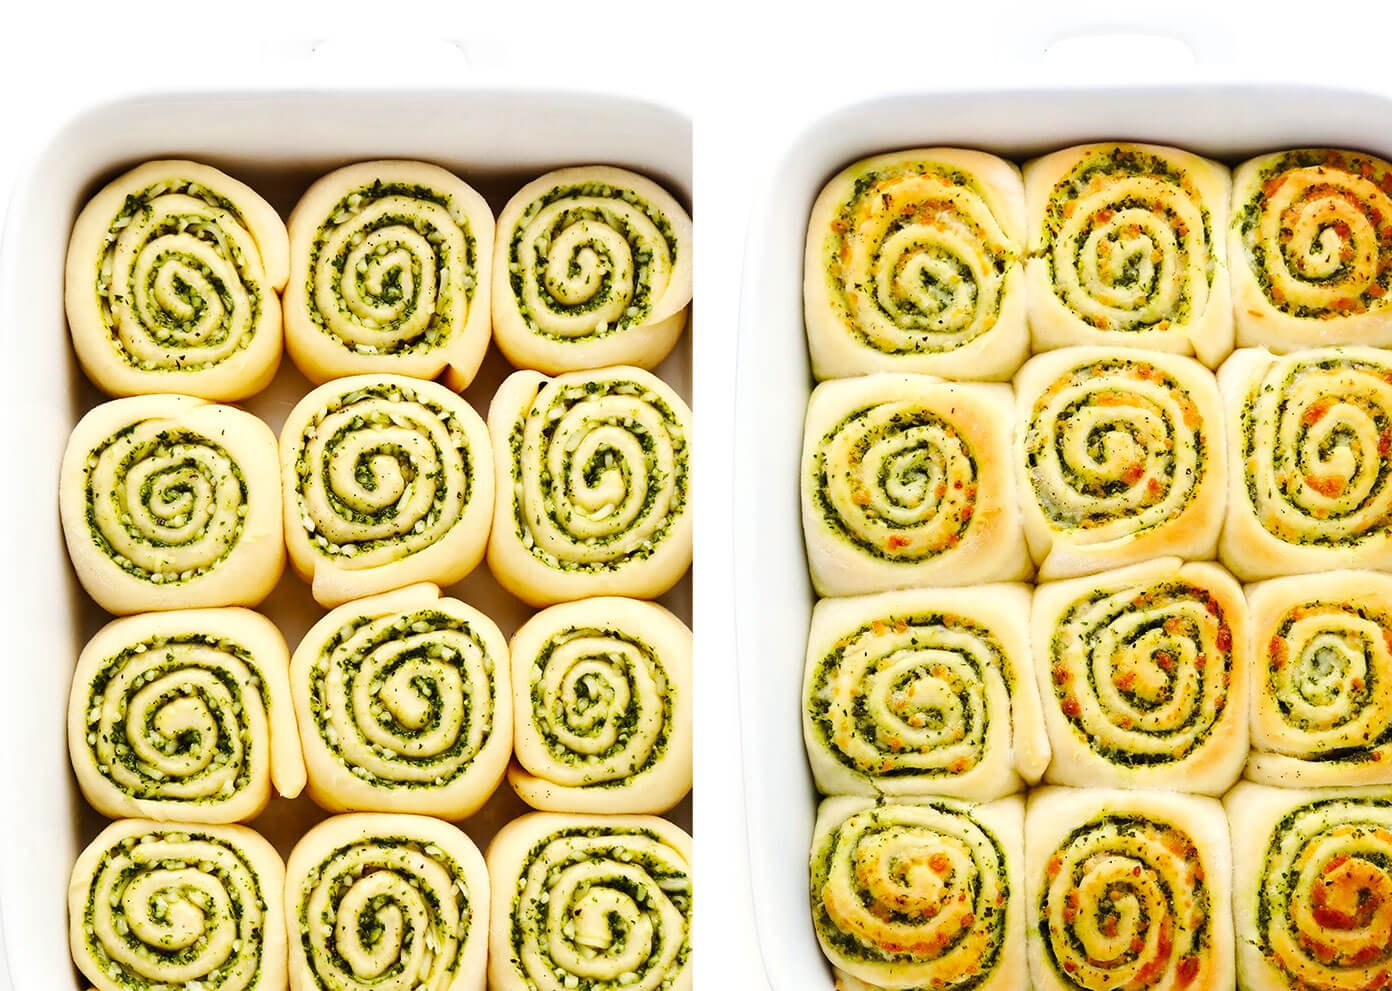 Before and After Baking of Cheesy Pesto Rolls